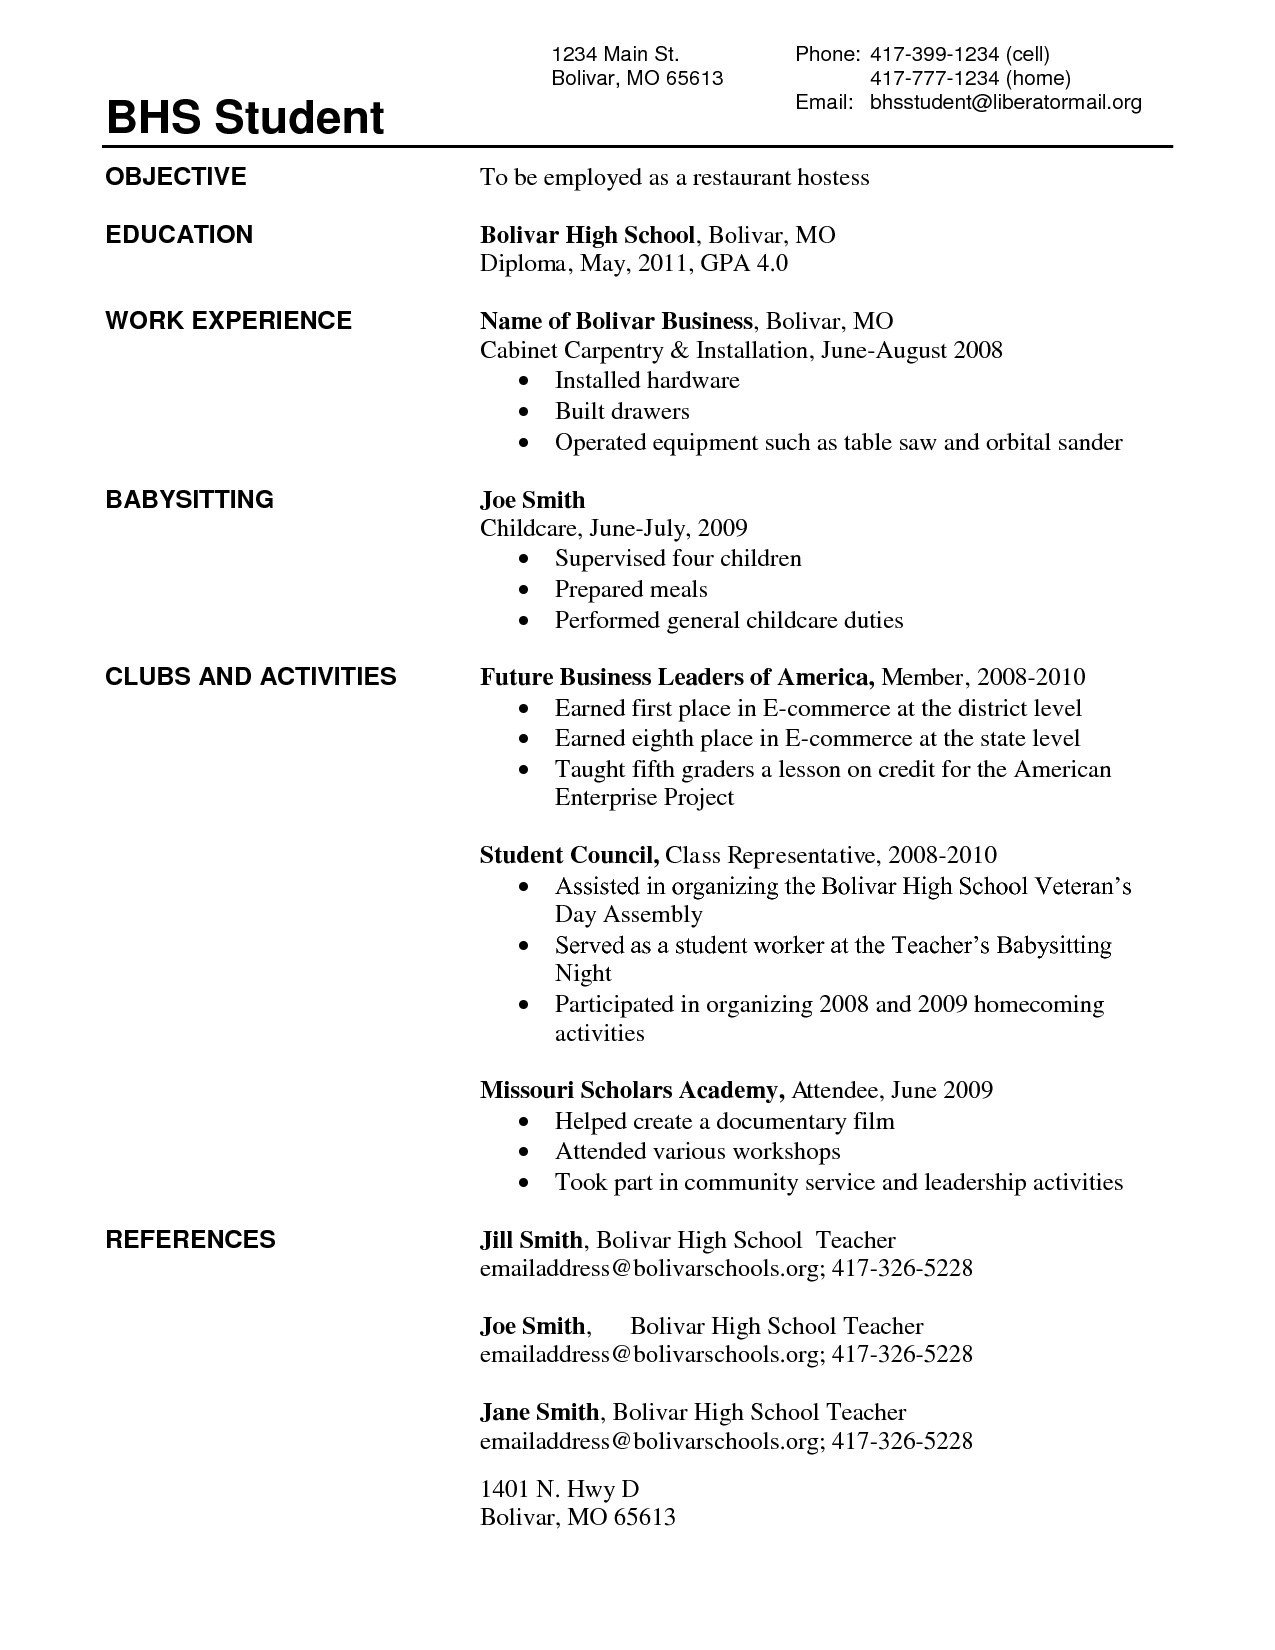 Marriott School Resume Template - Resume Templates for College Students 25 College Student Resume